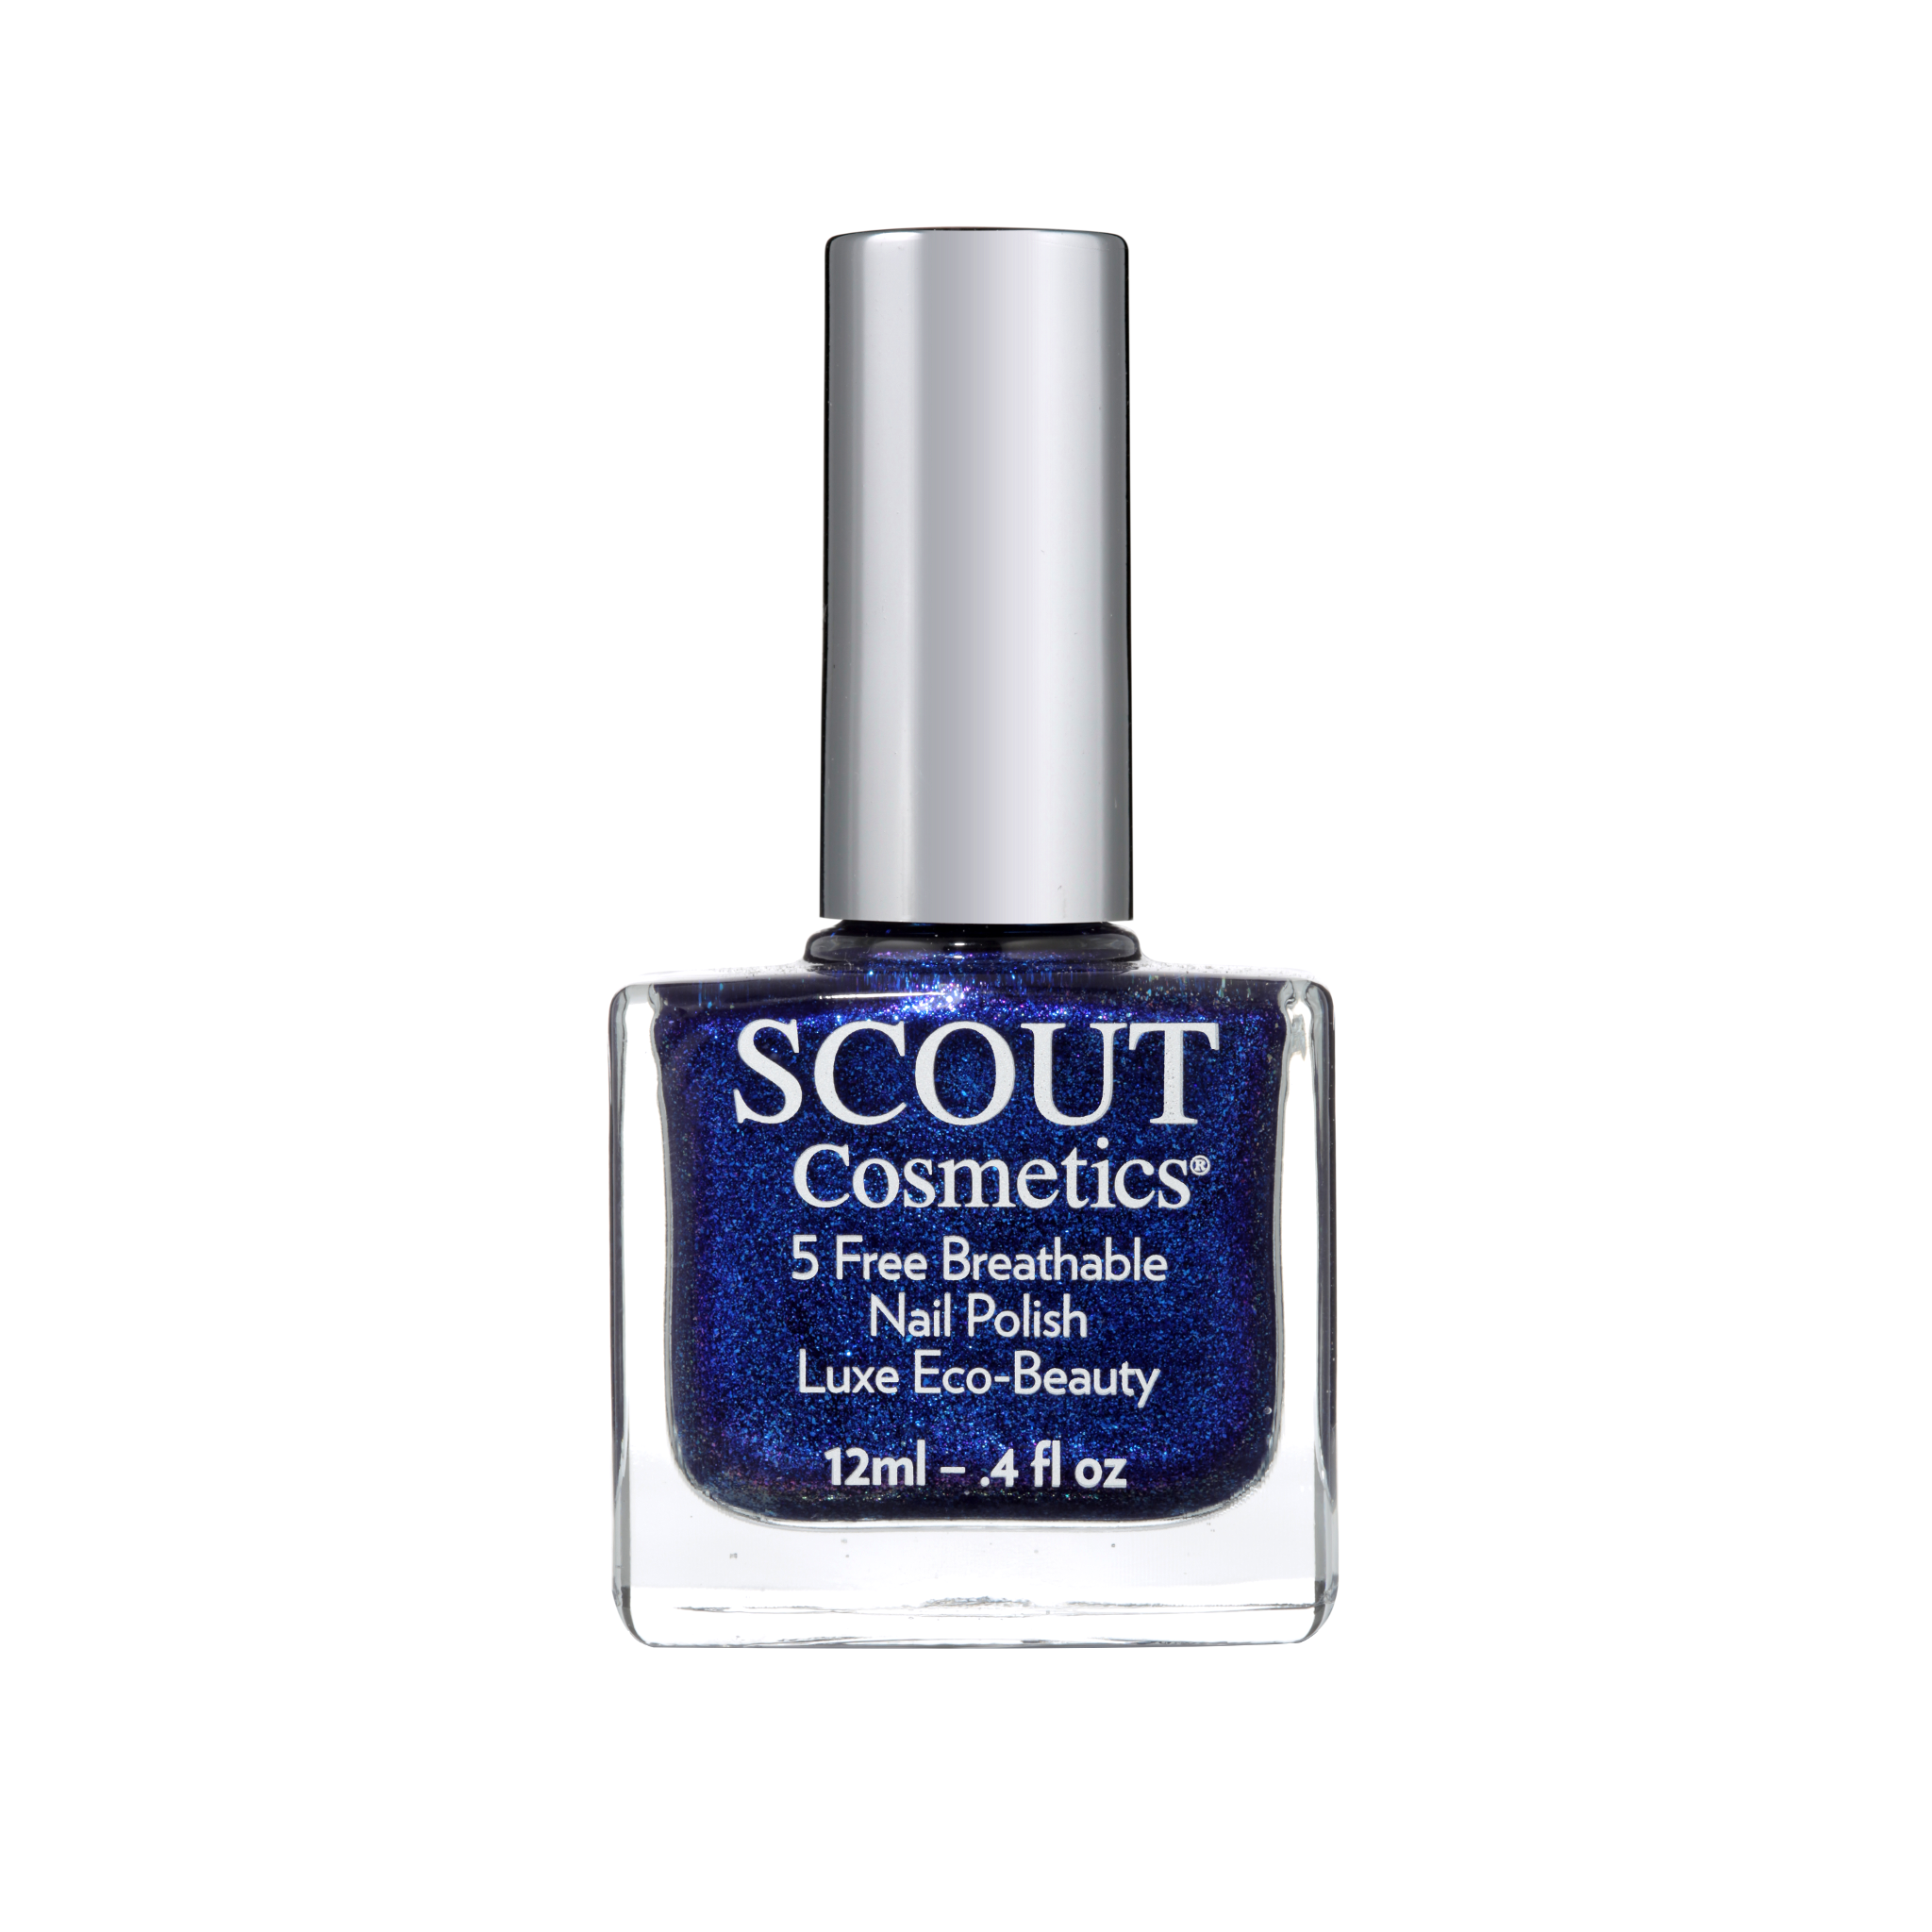 SCOUT Cosmetics Nail Polish - You Oughta Know